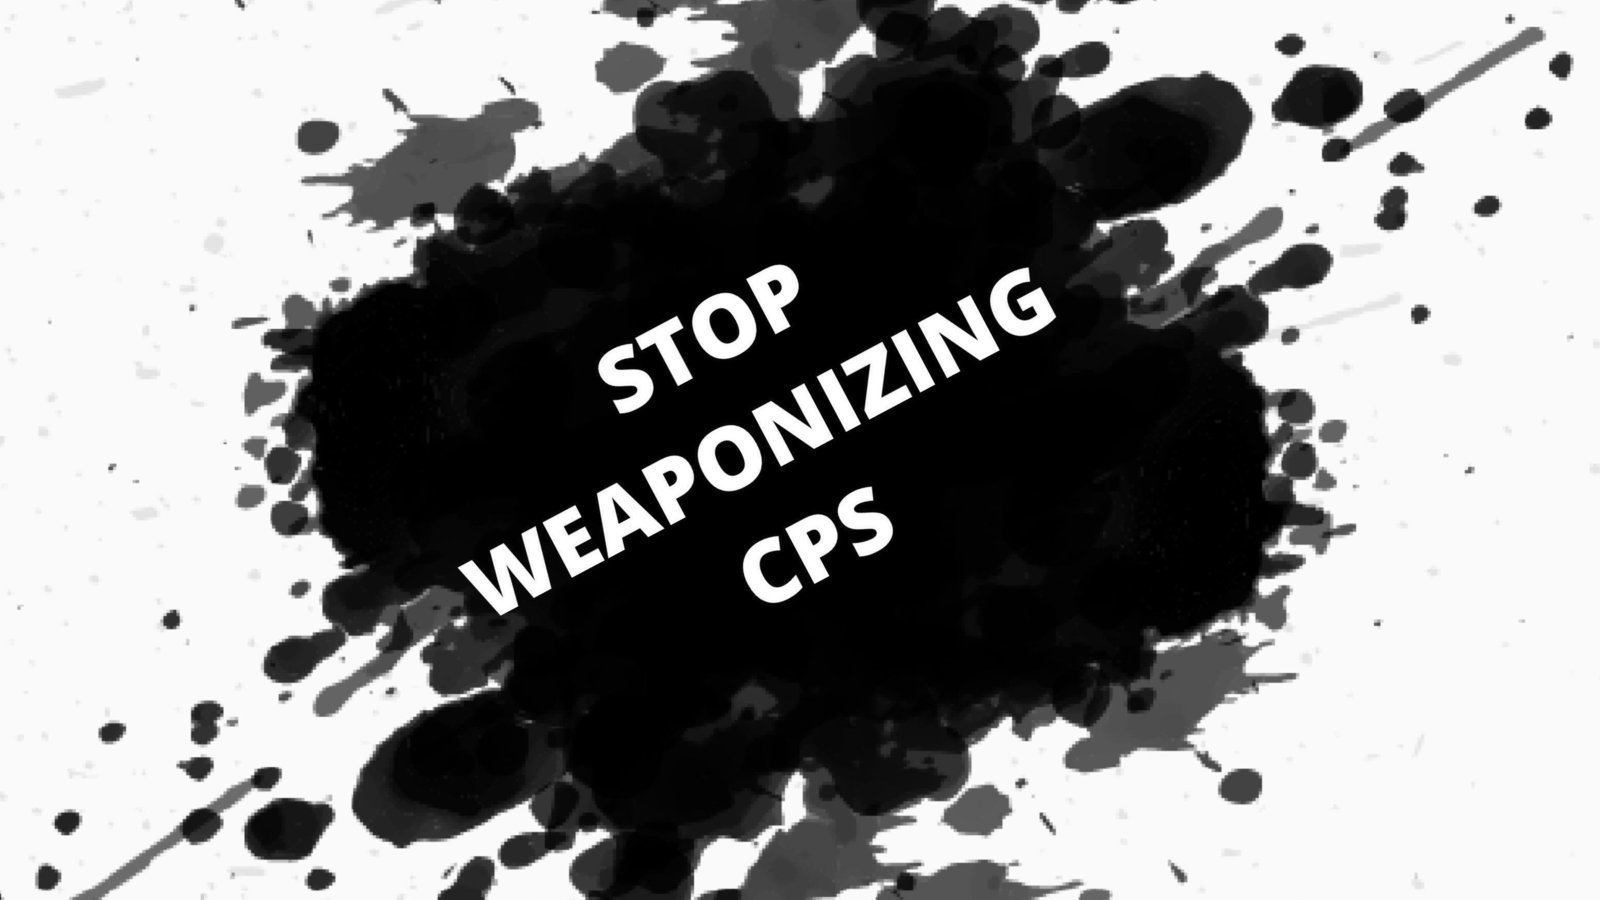 Topic · Cps · Change org